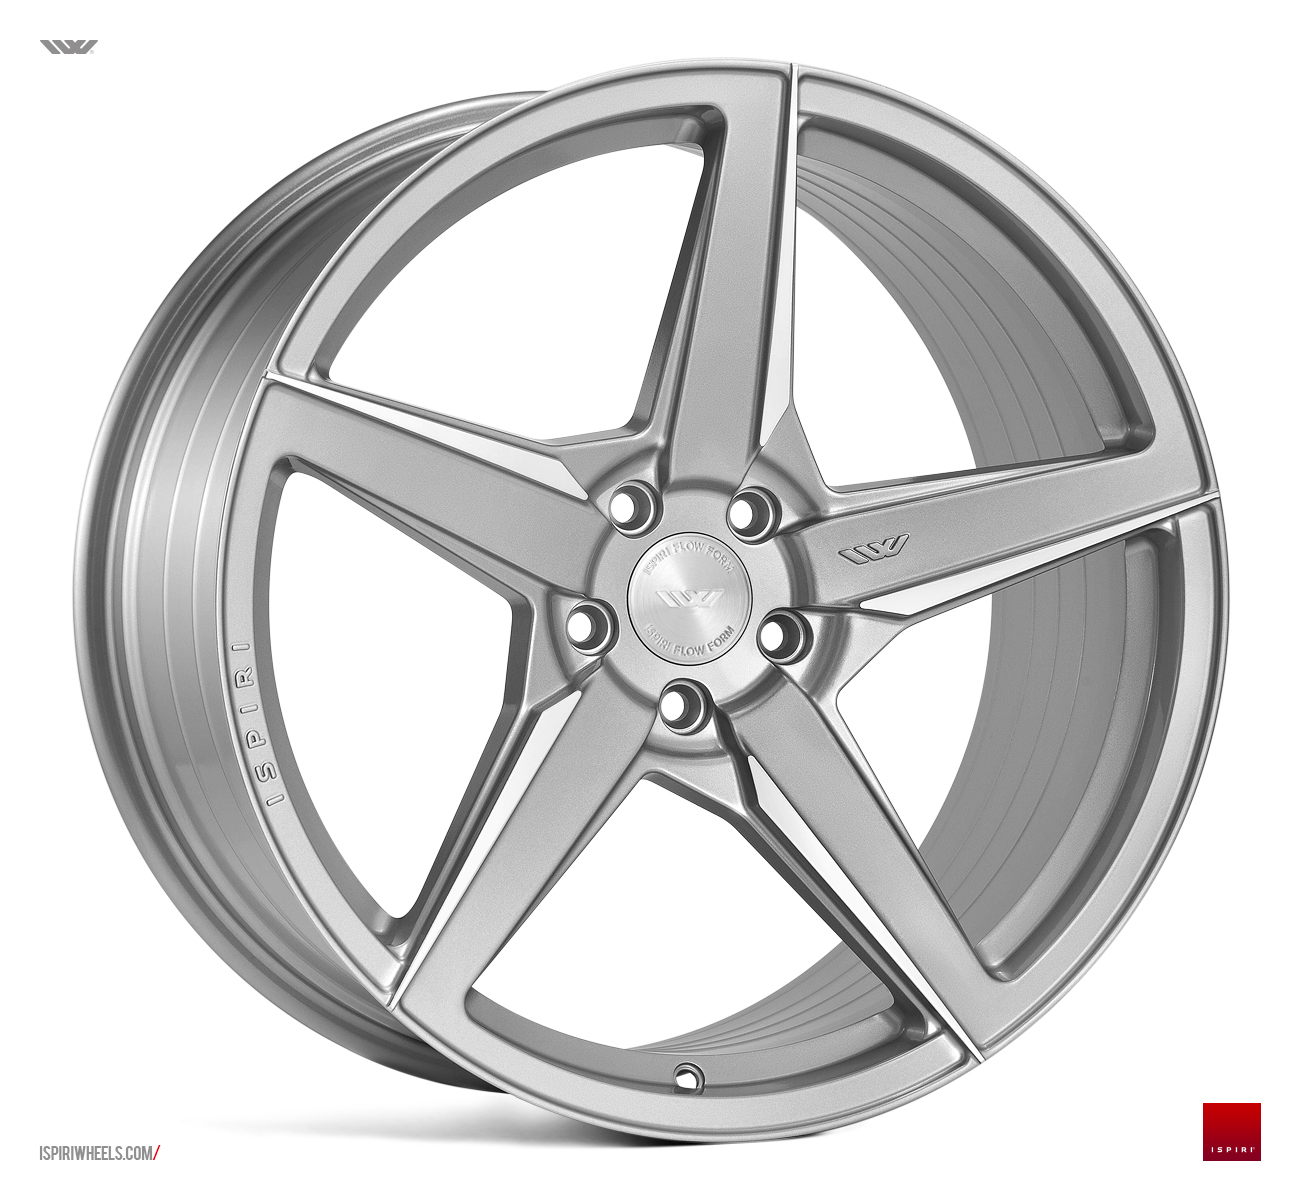 "NEW 20"" ISPIRI FFR5 5 SPOKE ALLOY WHEELS IN PURE SILVER BRUSHED, WIDER 10"" REARS et32/45 5X112"